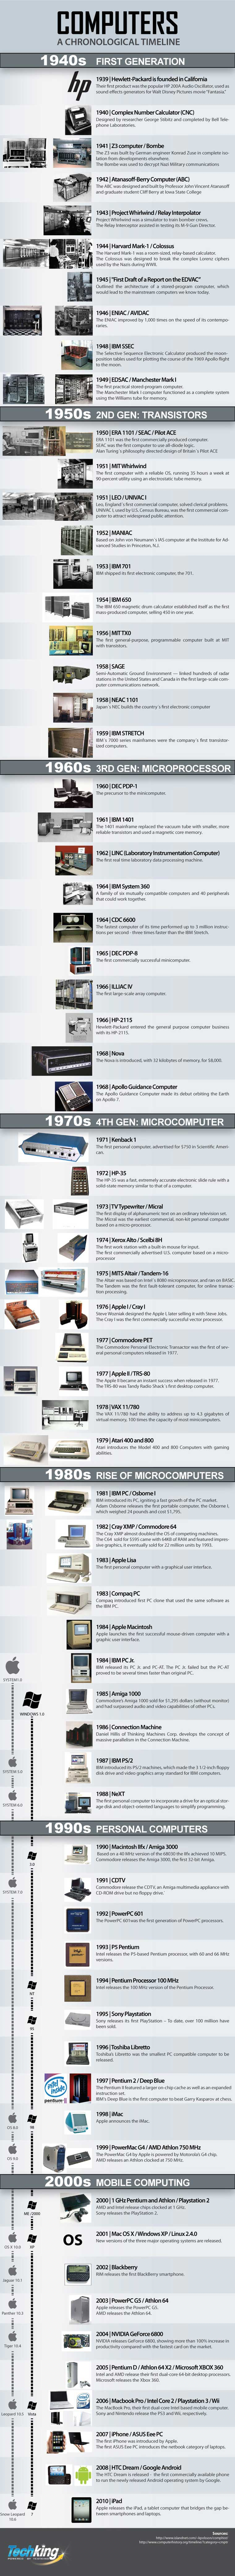 A Comprehensive History of Computers - Infographic